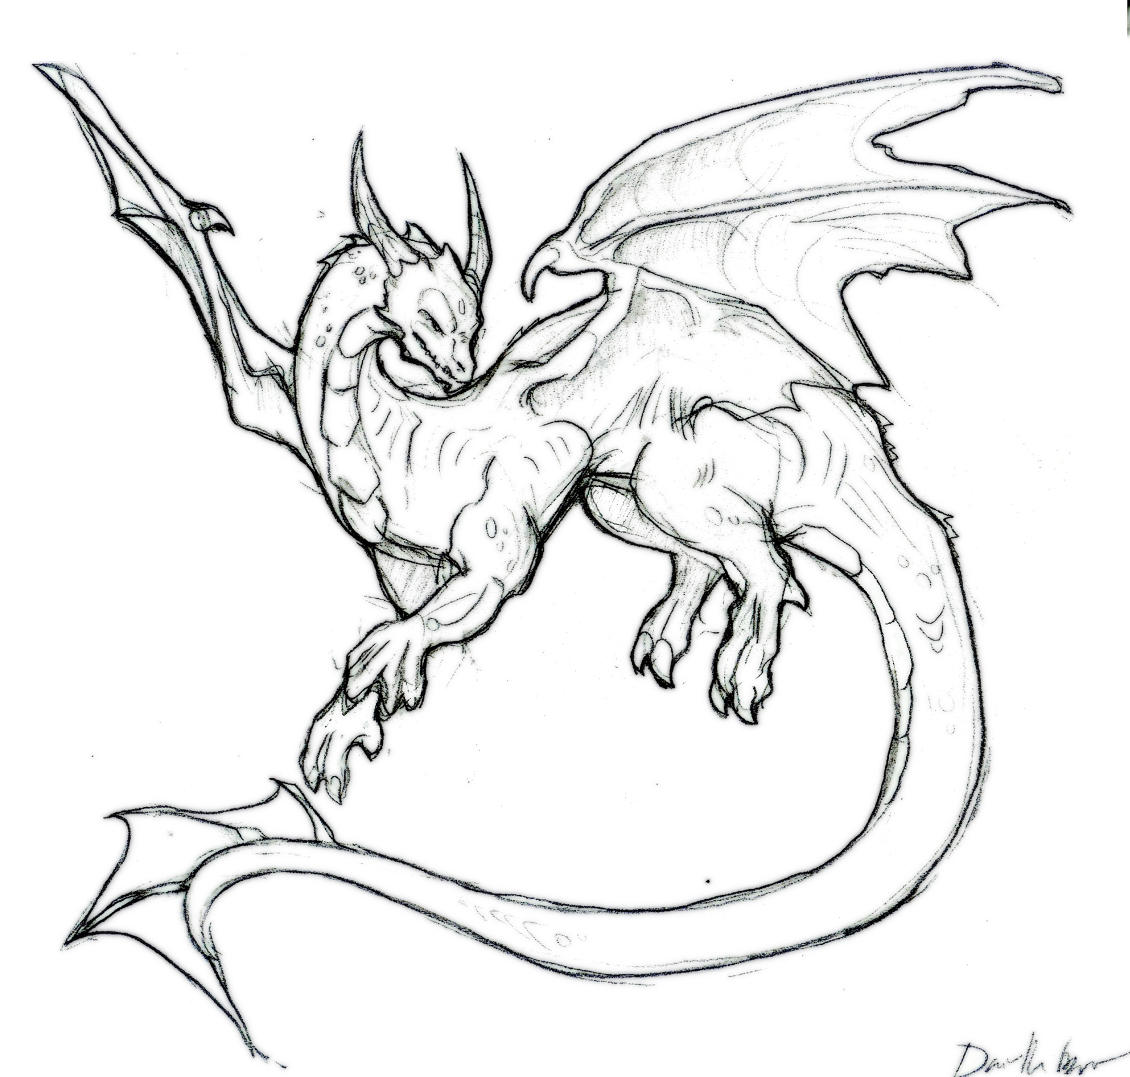 Line Drawing Dragon : Wanna be line art dragon by liquiddragonn on deviantart